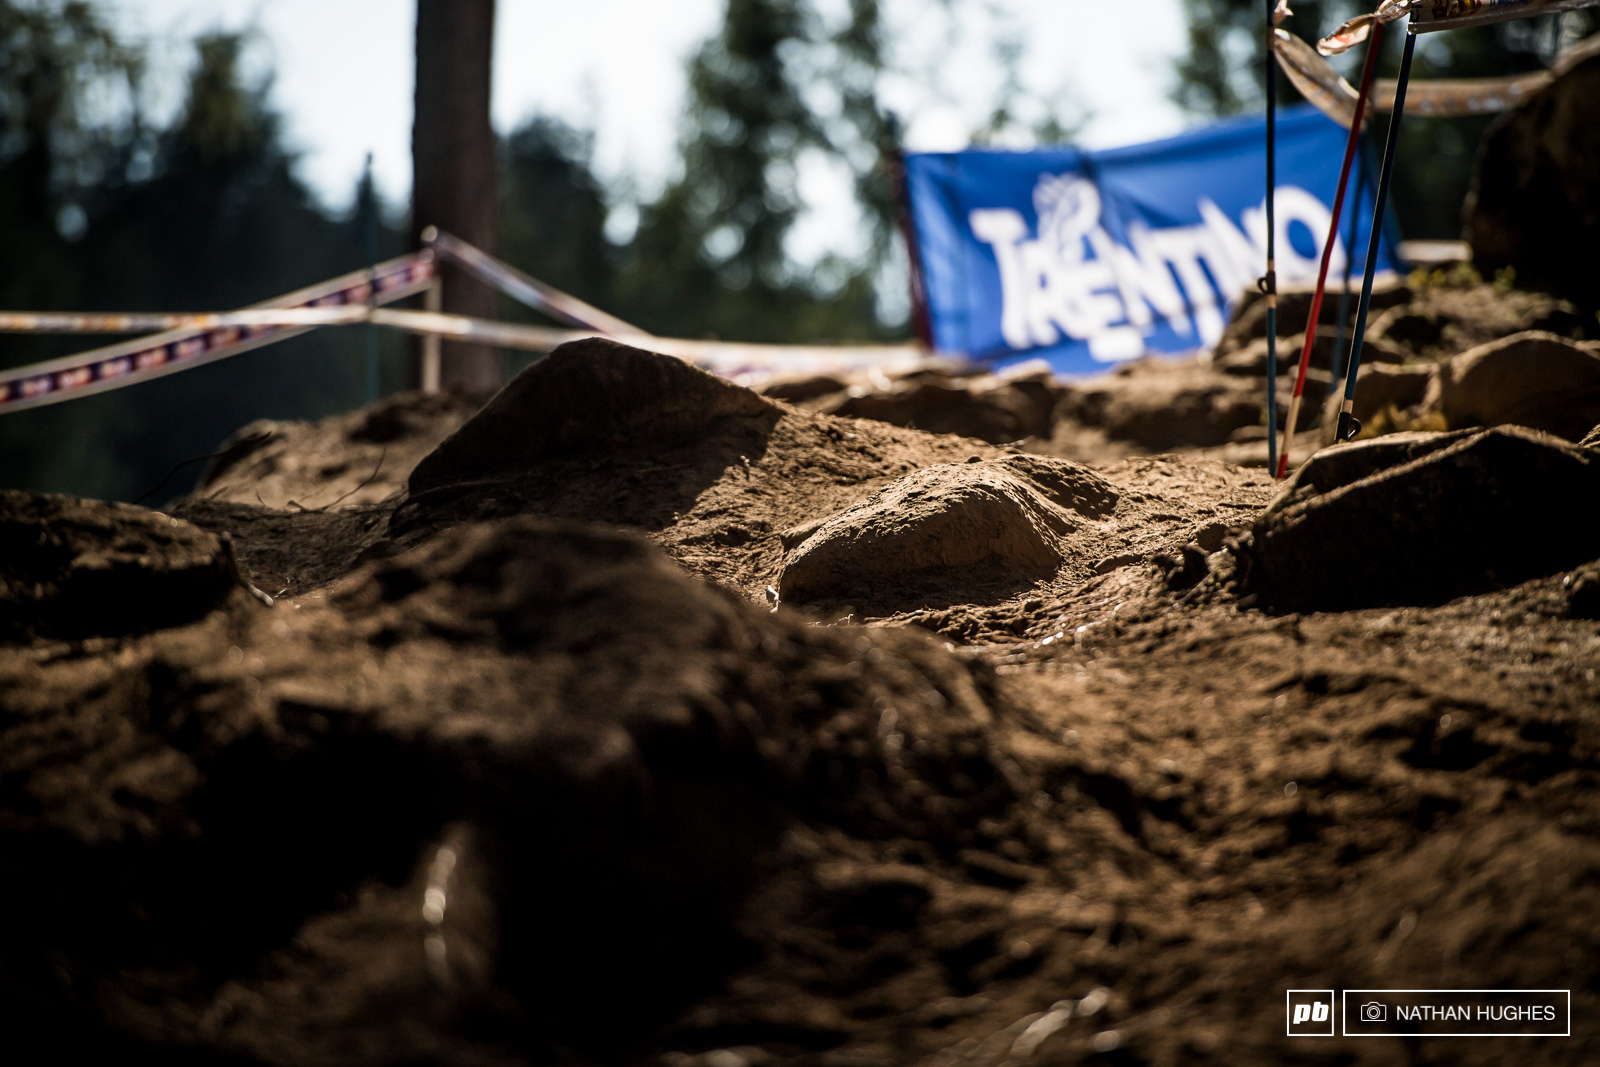 One more day of sun and Val di Sole is going become one giant sand box. It s well on the way already.